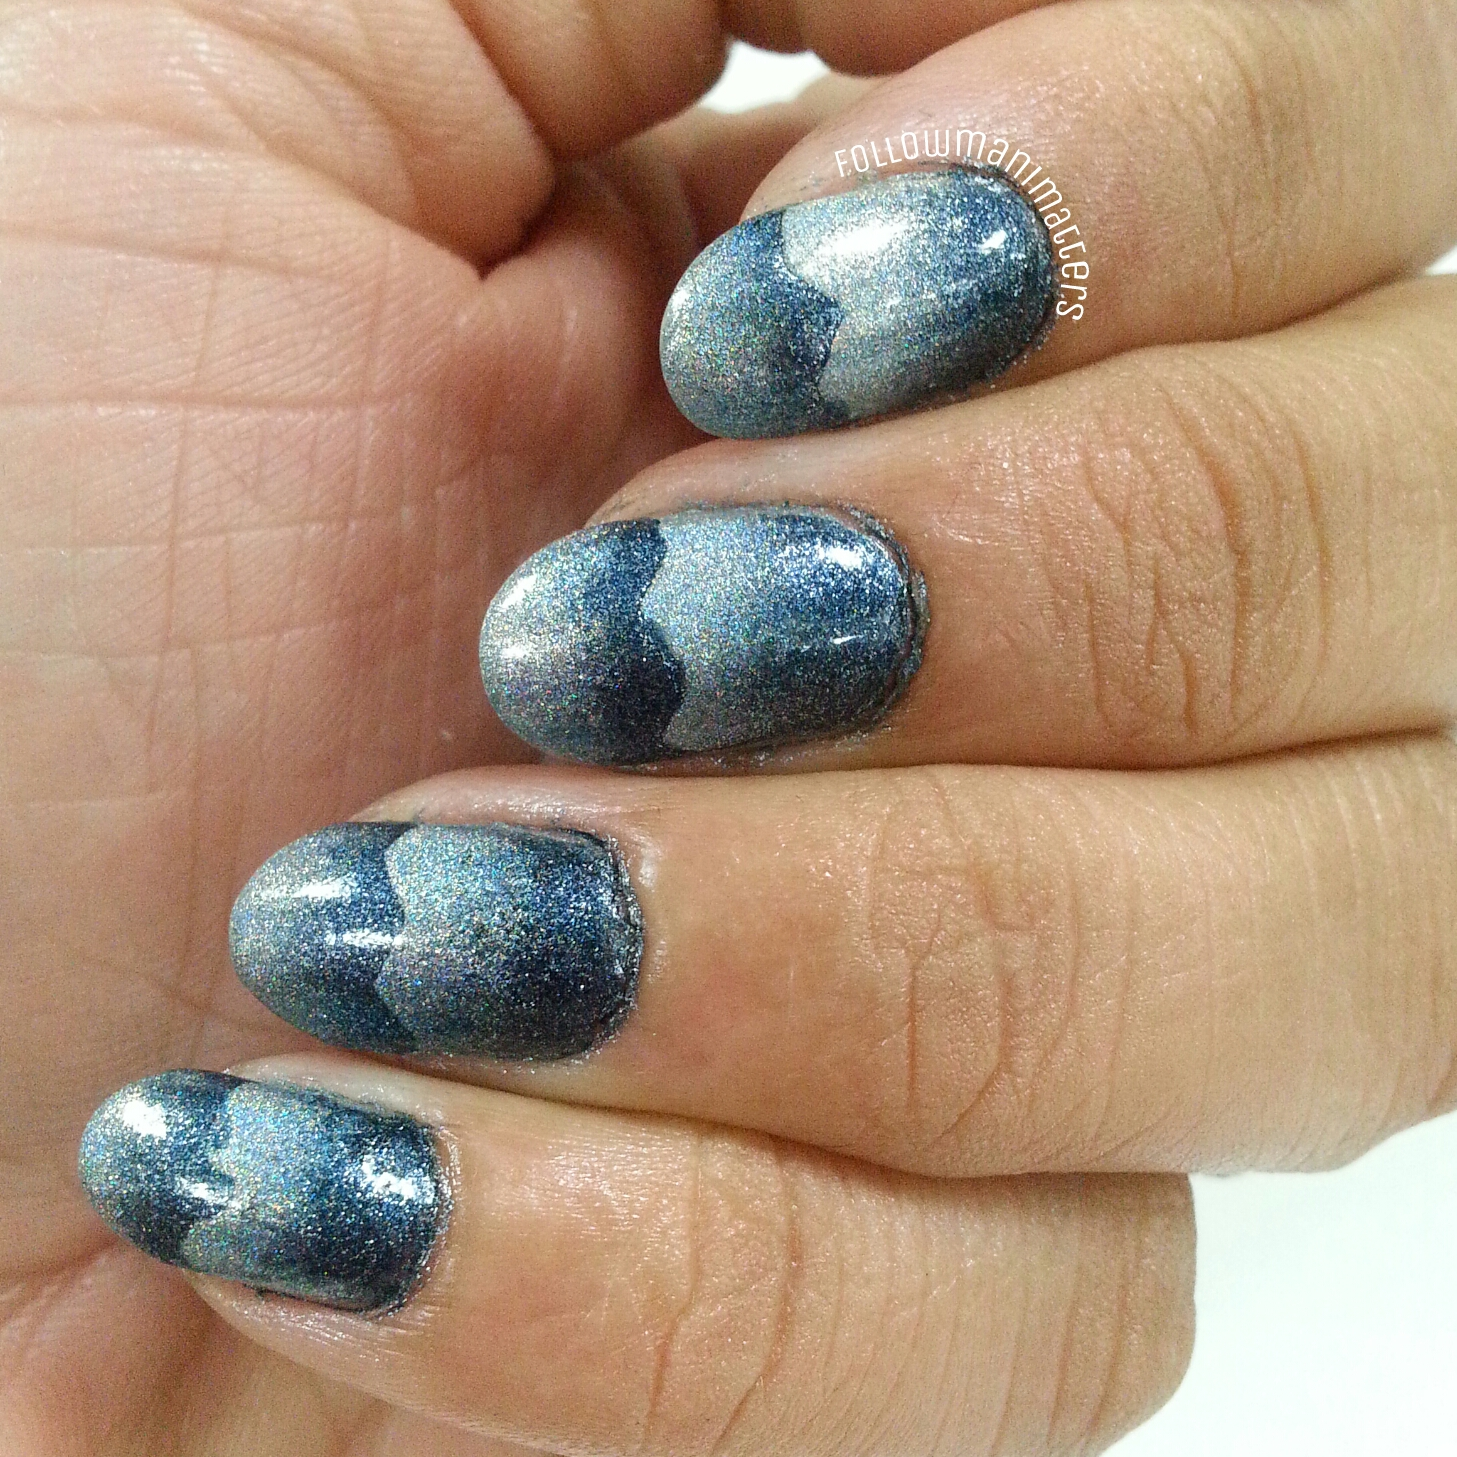 Gradient Nail Art: Manisha's FollowManimatters: Scaled Gradient Nail Art